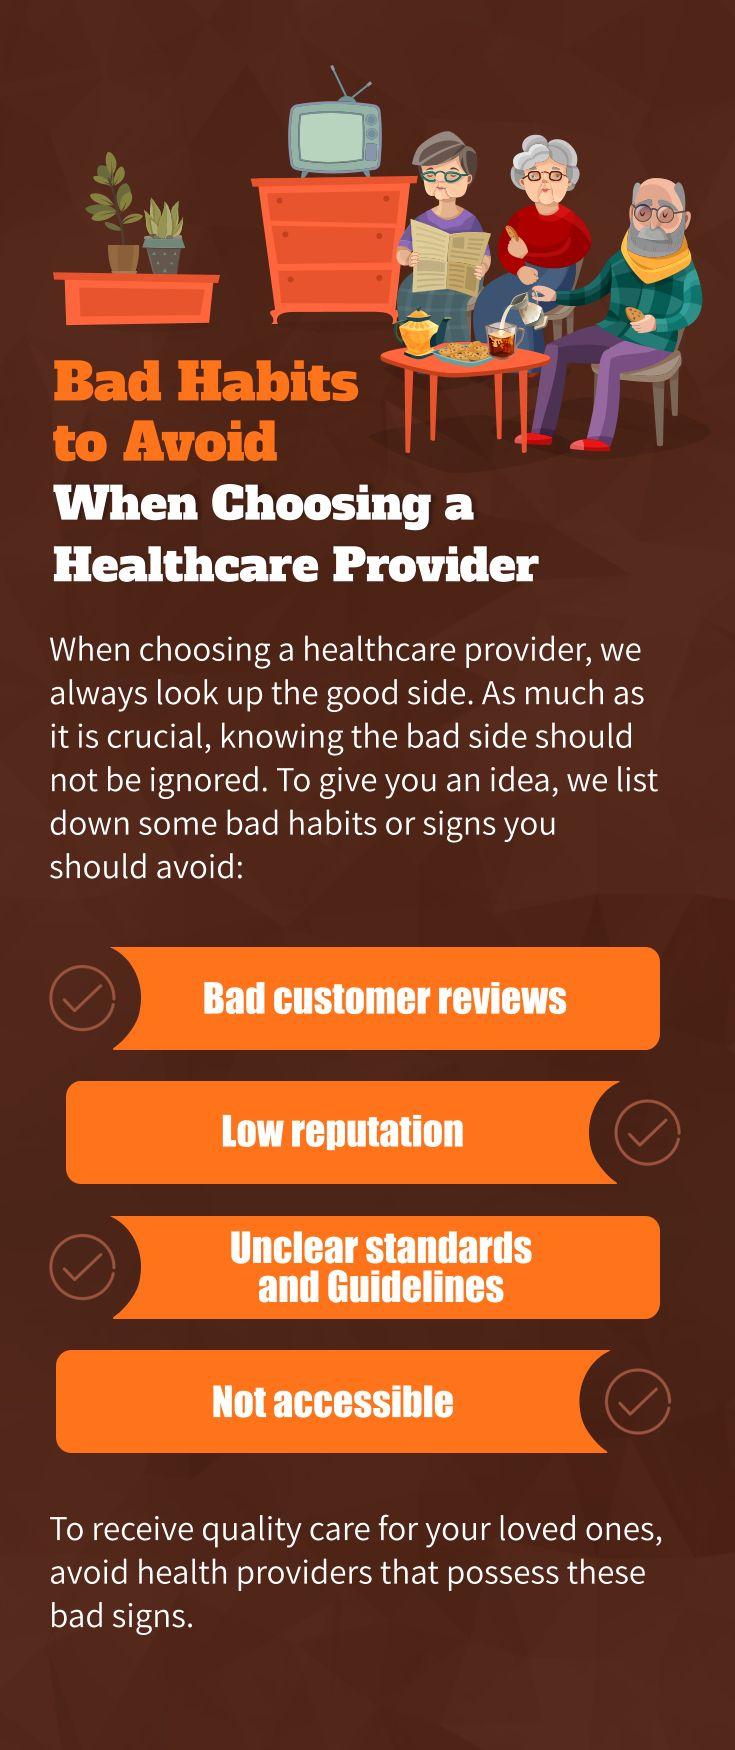 Bad habits to avoid when choosing a healthcare provider